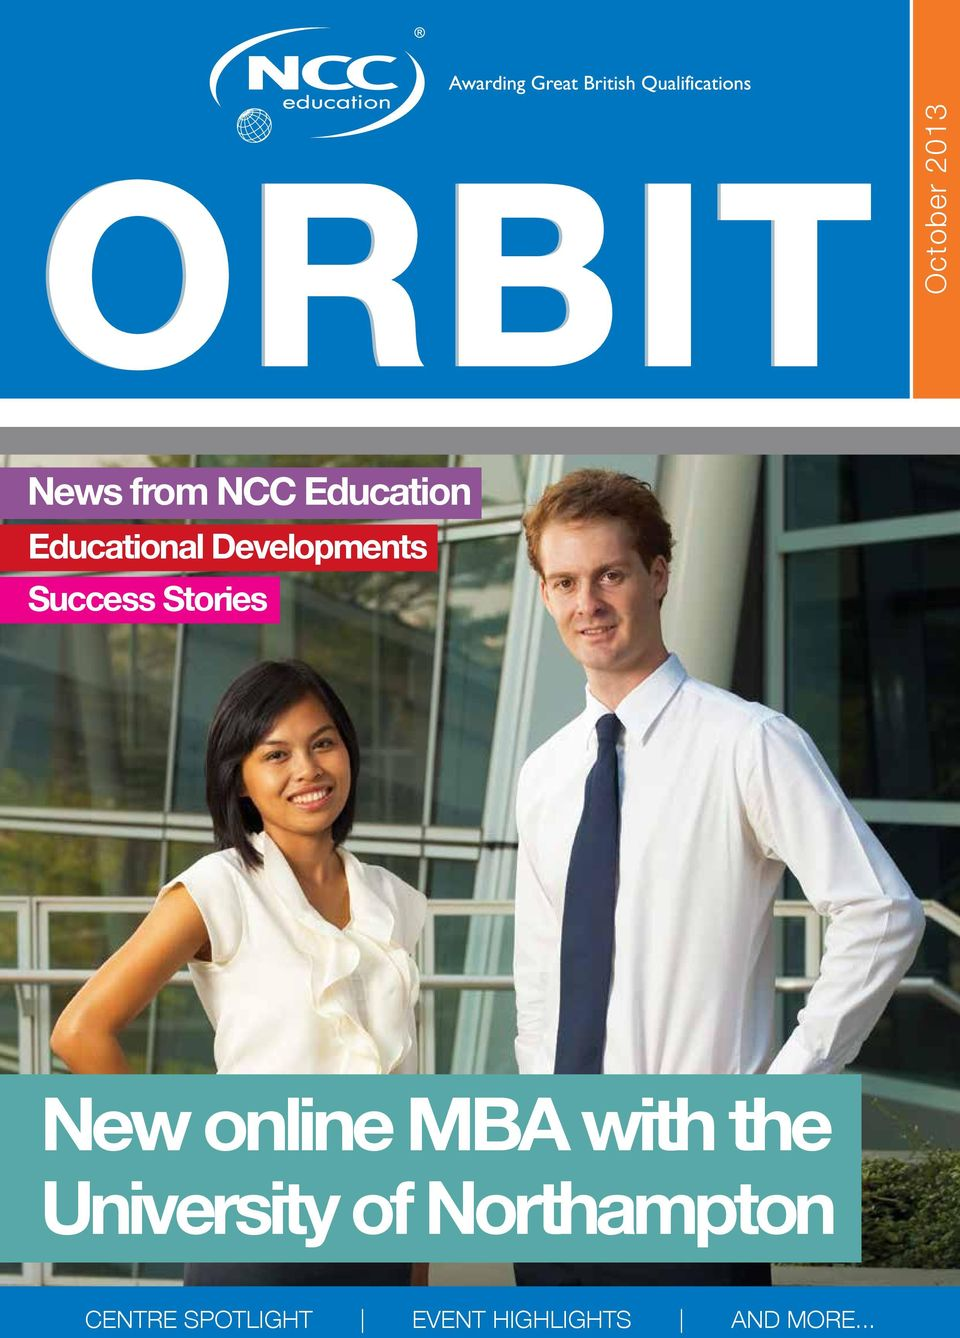 online MBA with the University of